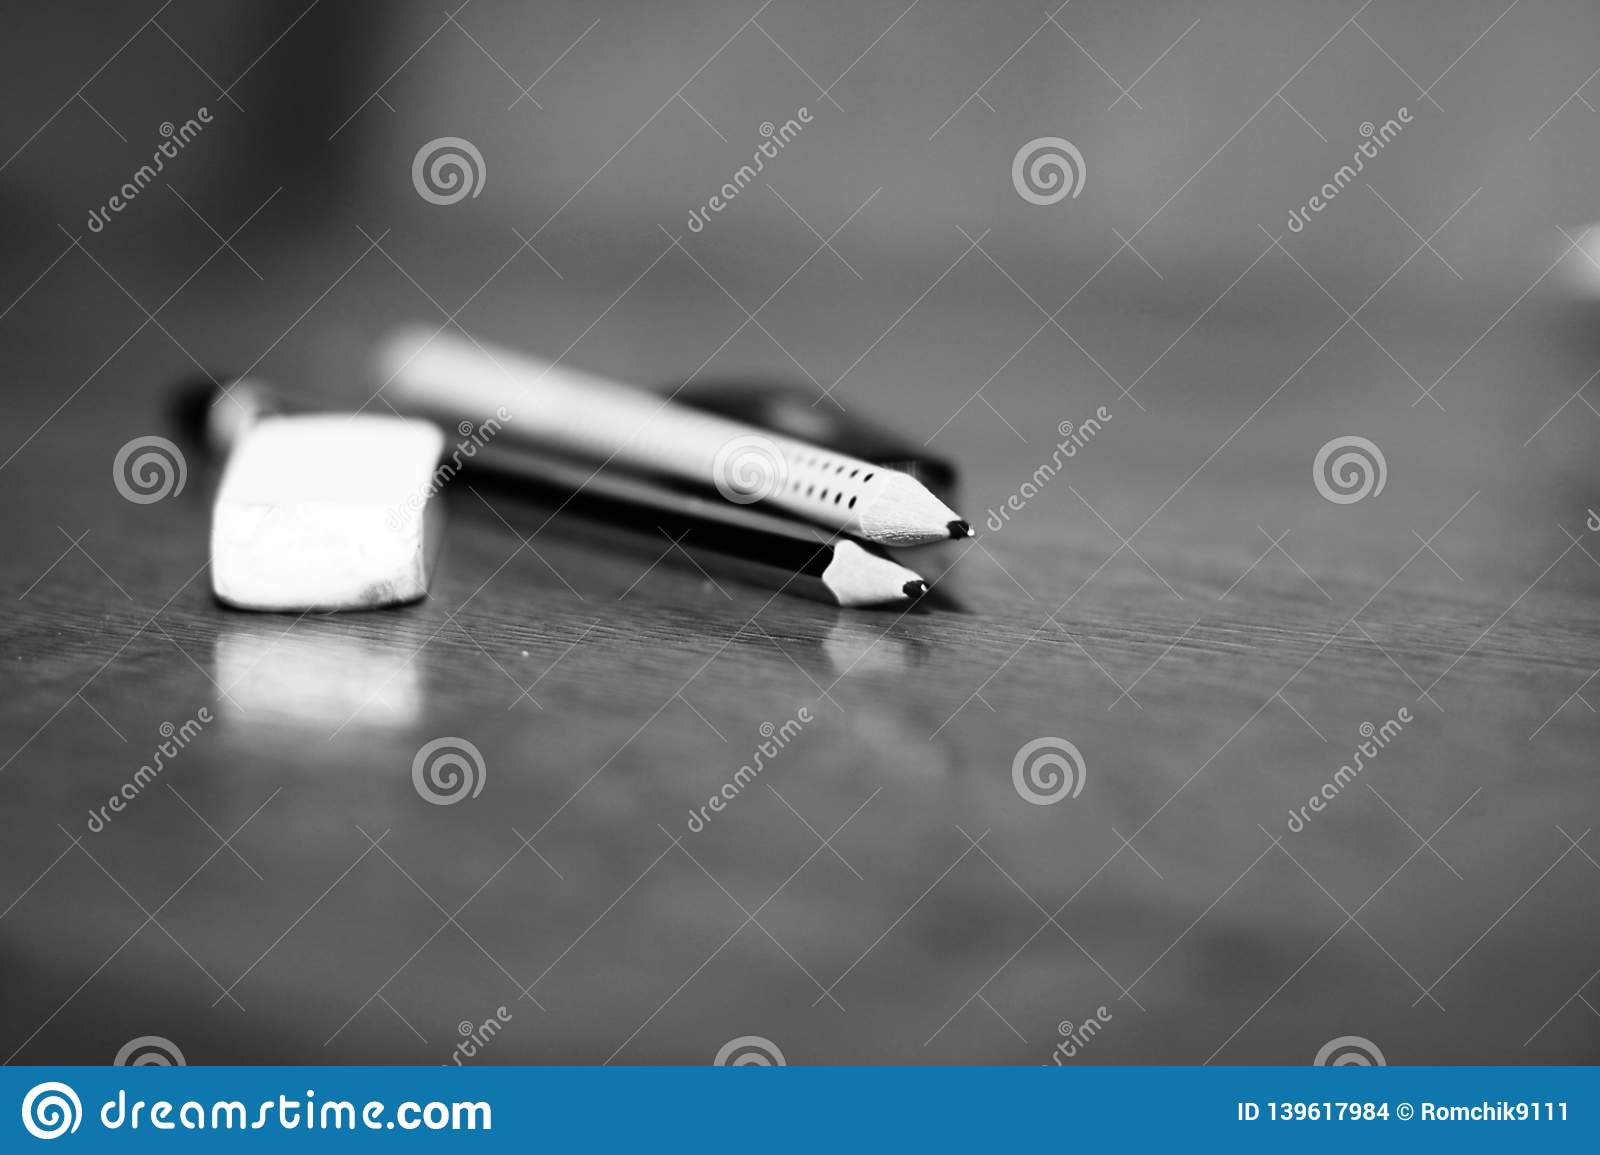 Stationery pencil and eraser